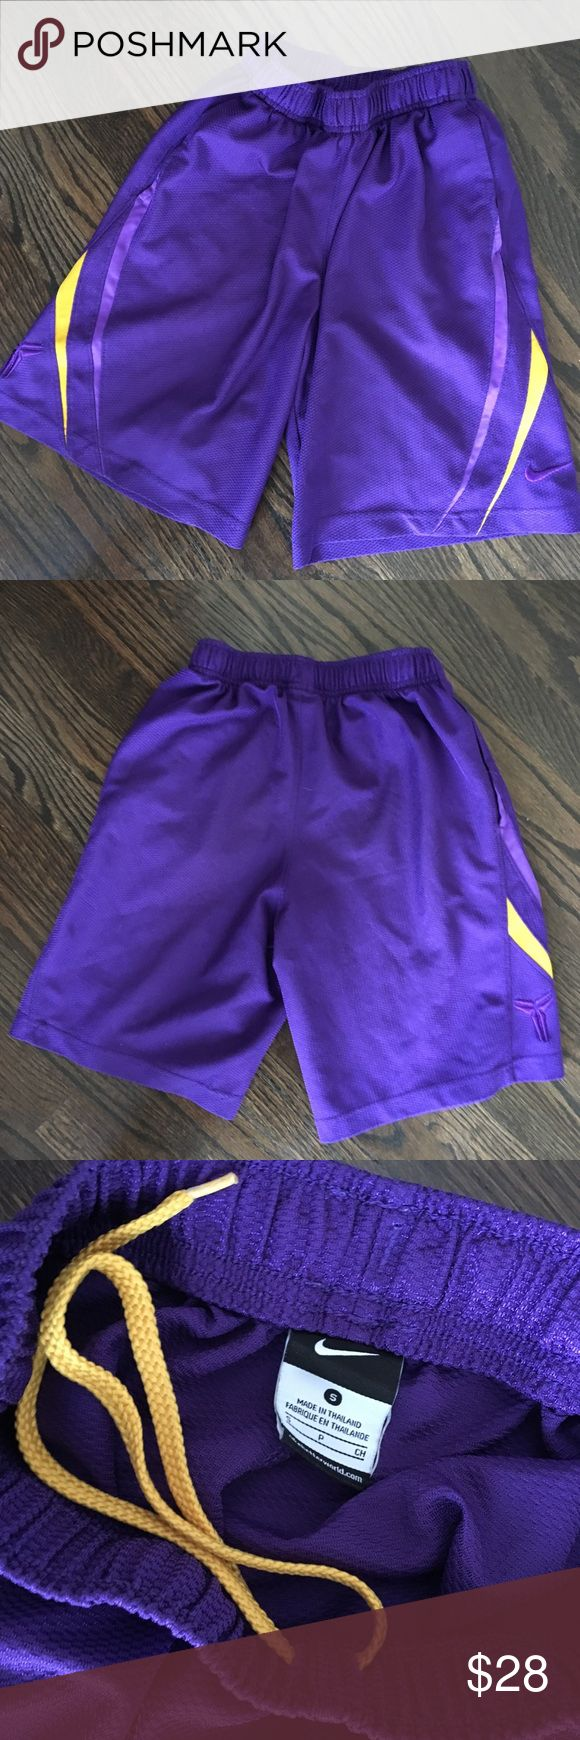 Nike Shorts Nike Kobe Shorts Made In Dry Fit material In great condition Nike Bottoms Shorts